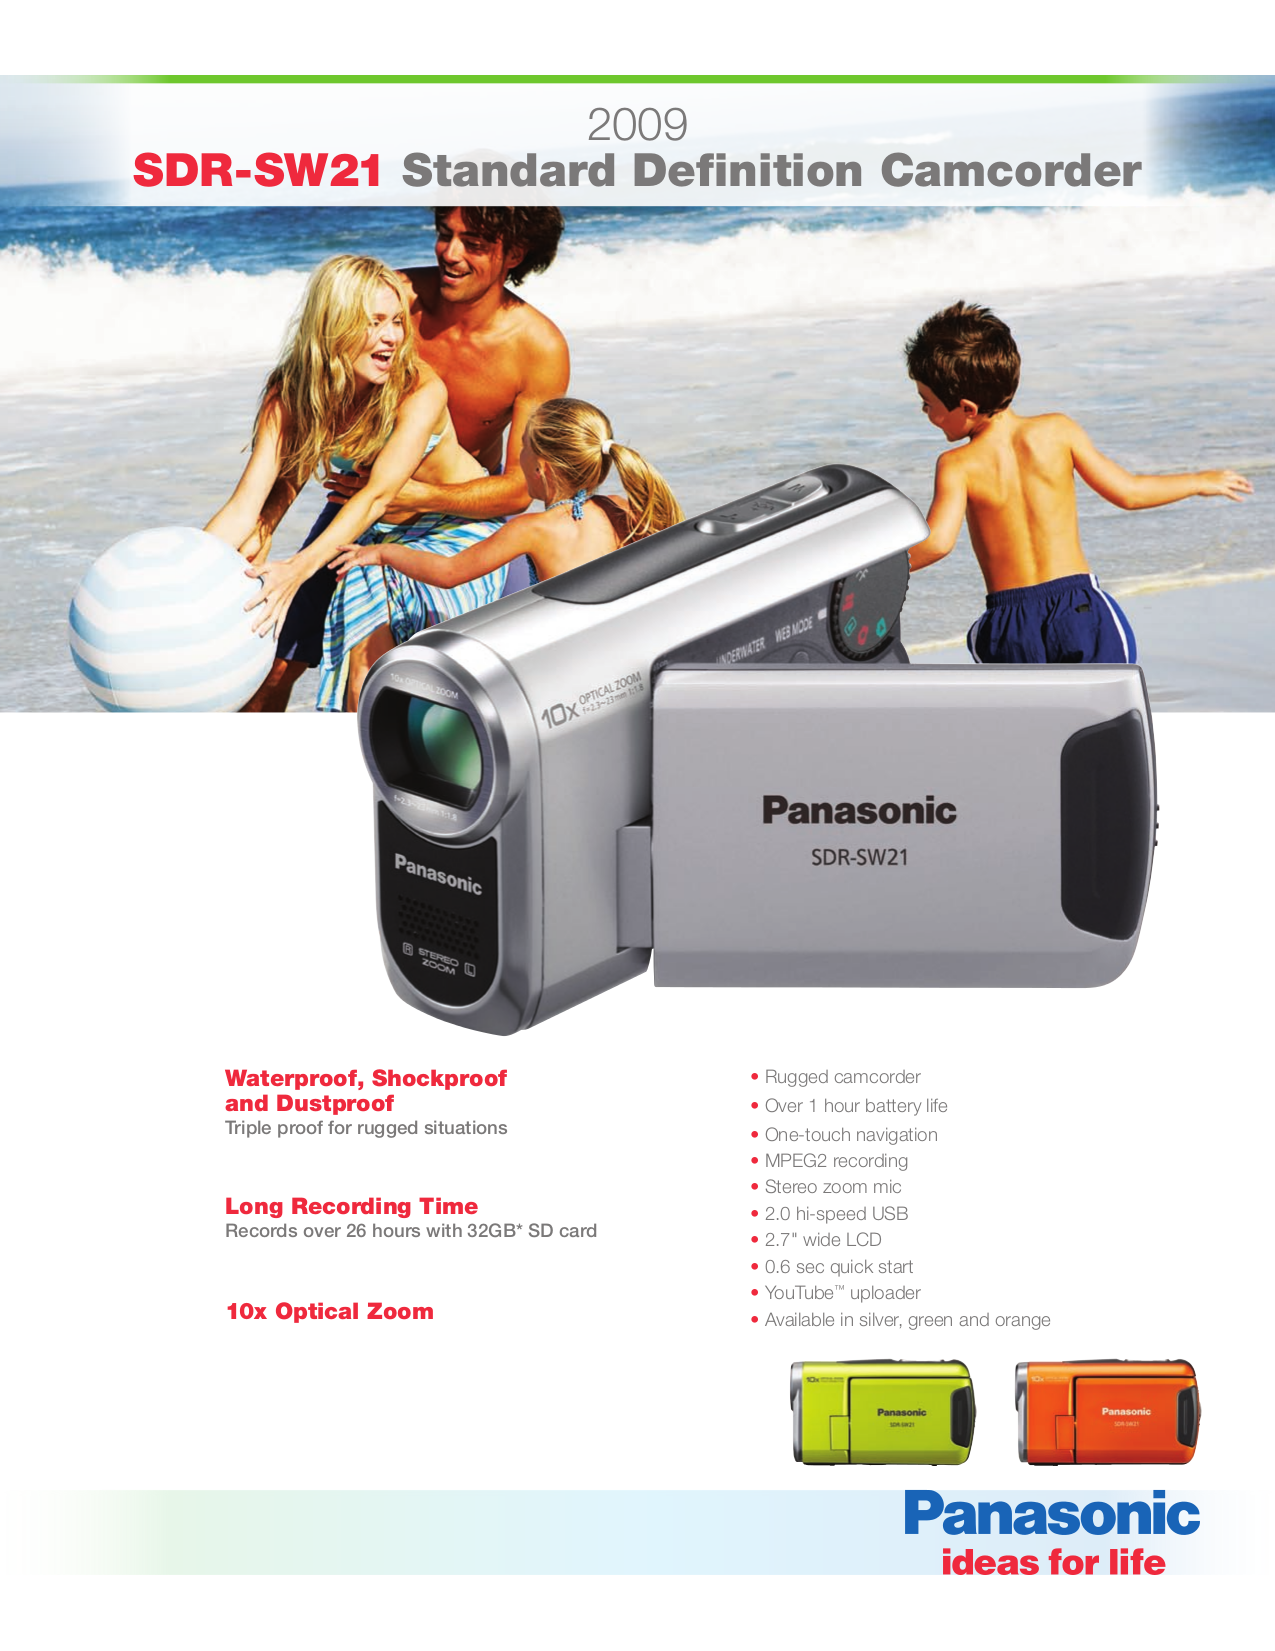 Download free pdf for Panasonic SDR-SW21 Camcorders manual